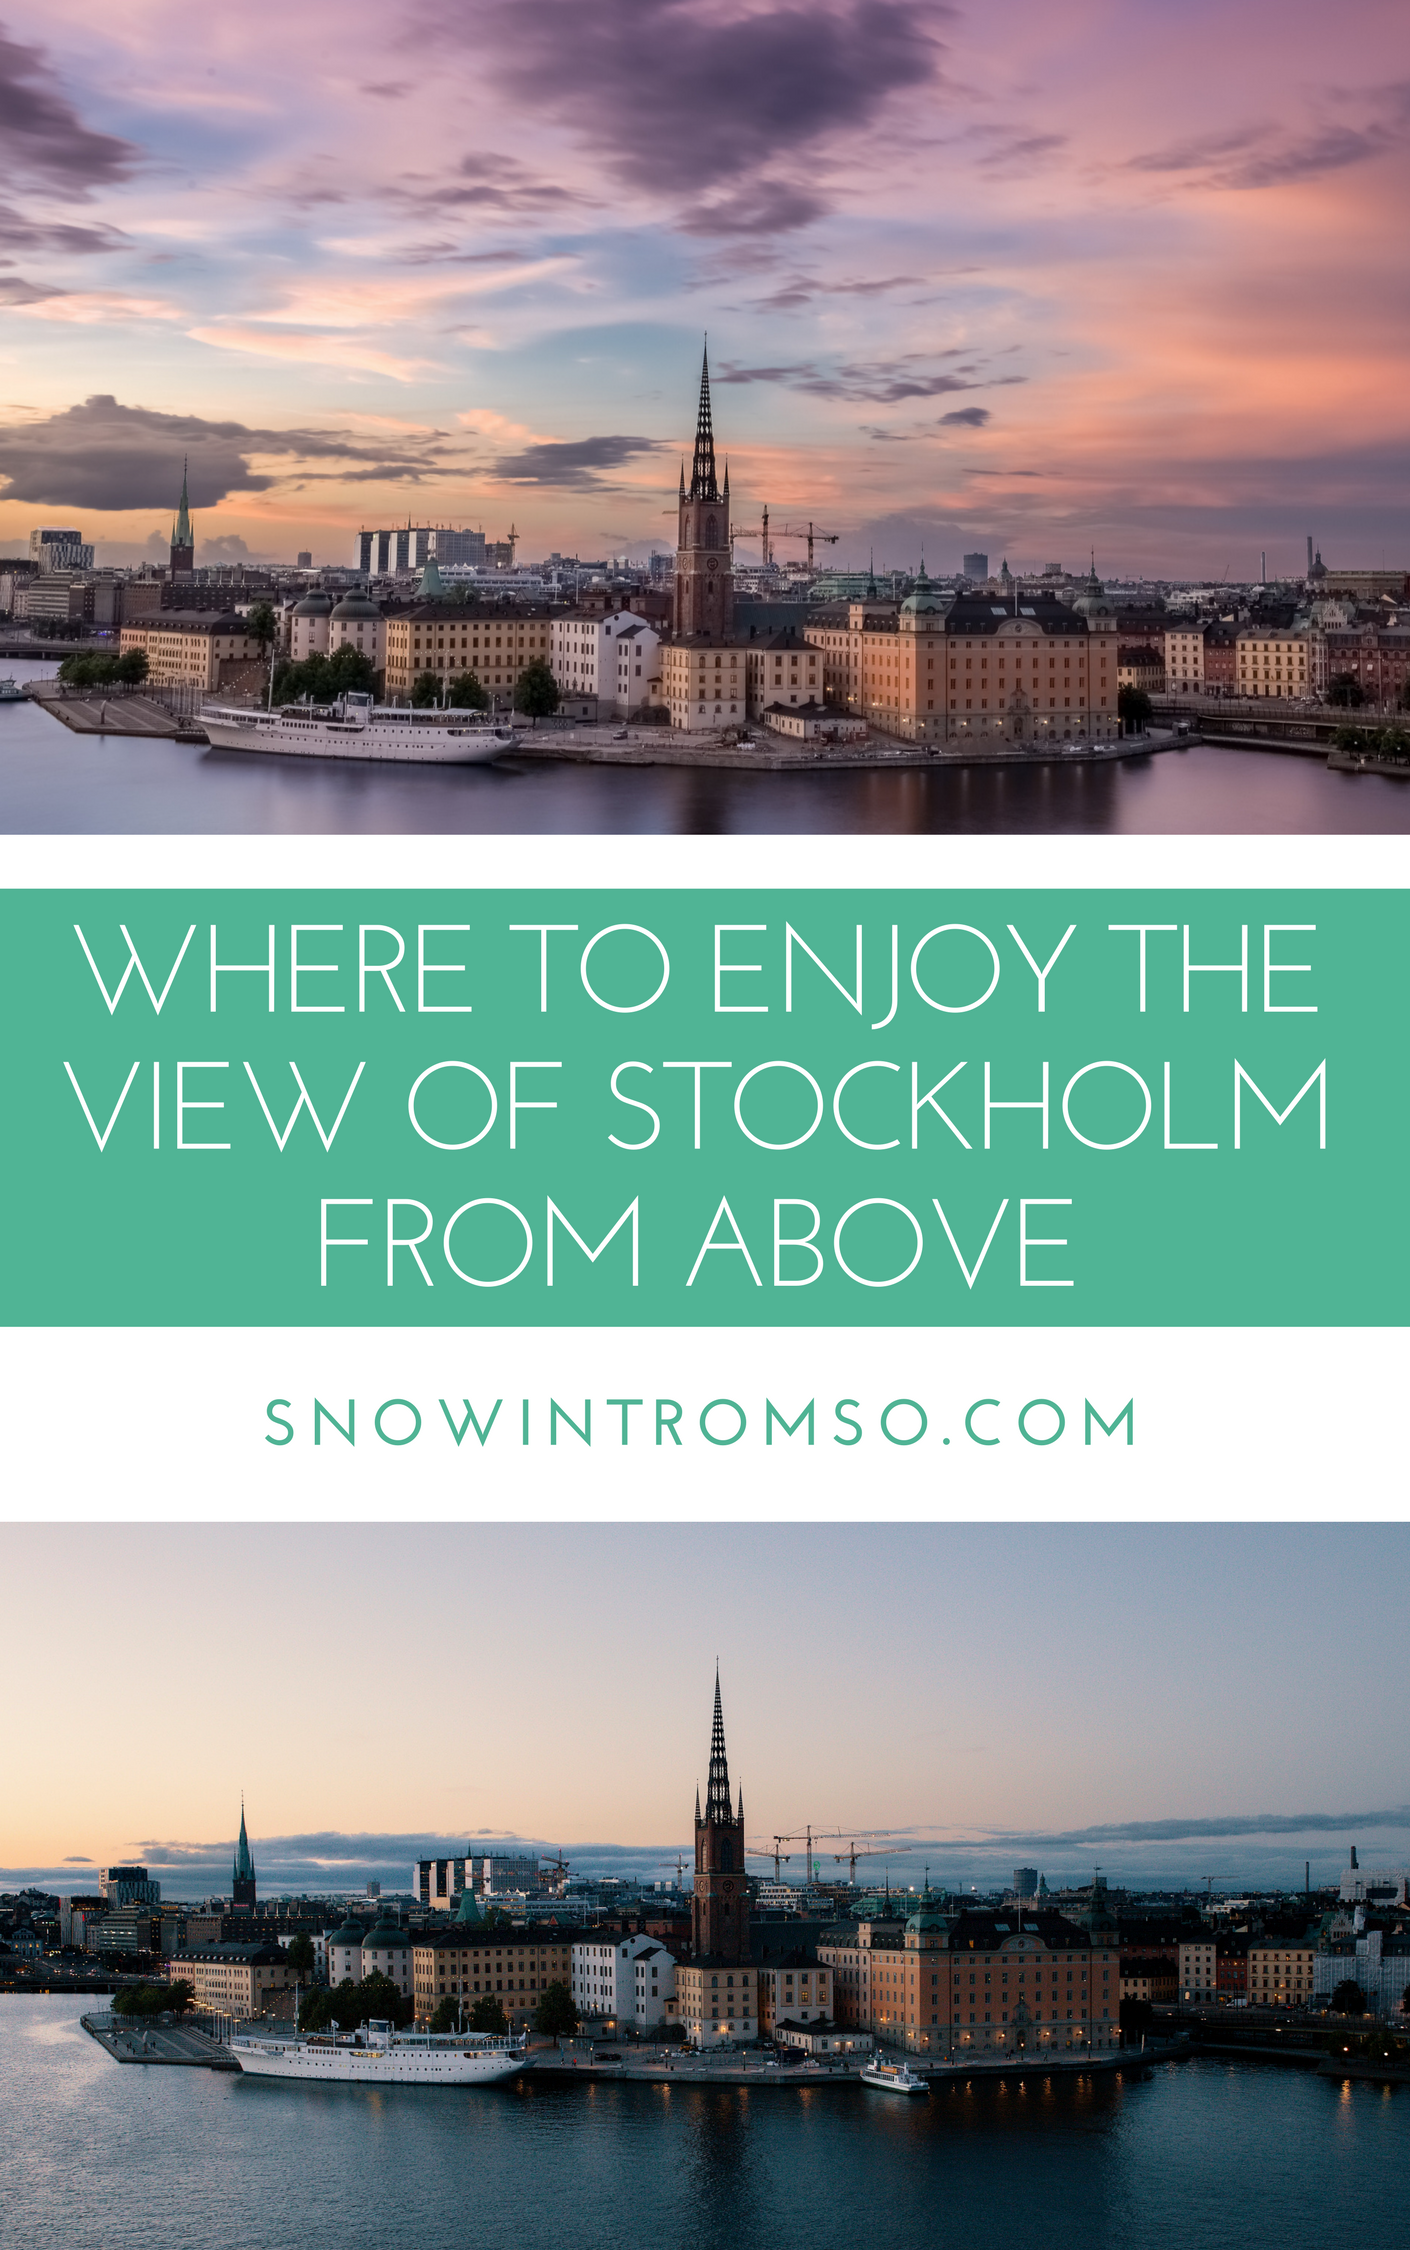 Click through to find out where you can enjoy the view of Stockholm from above!